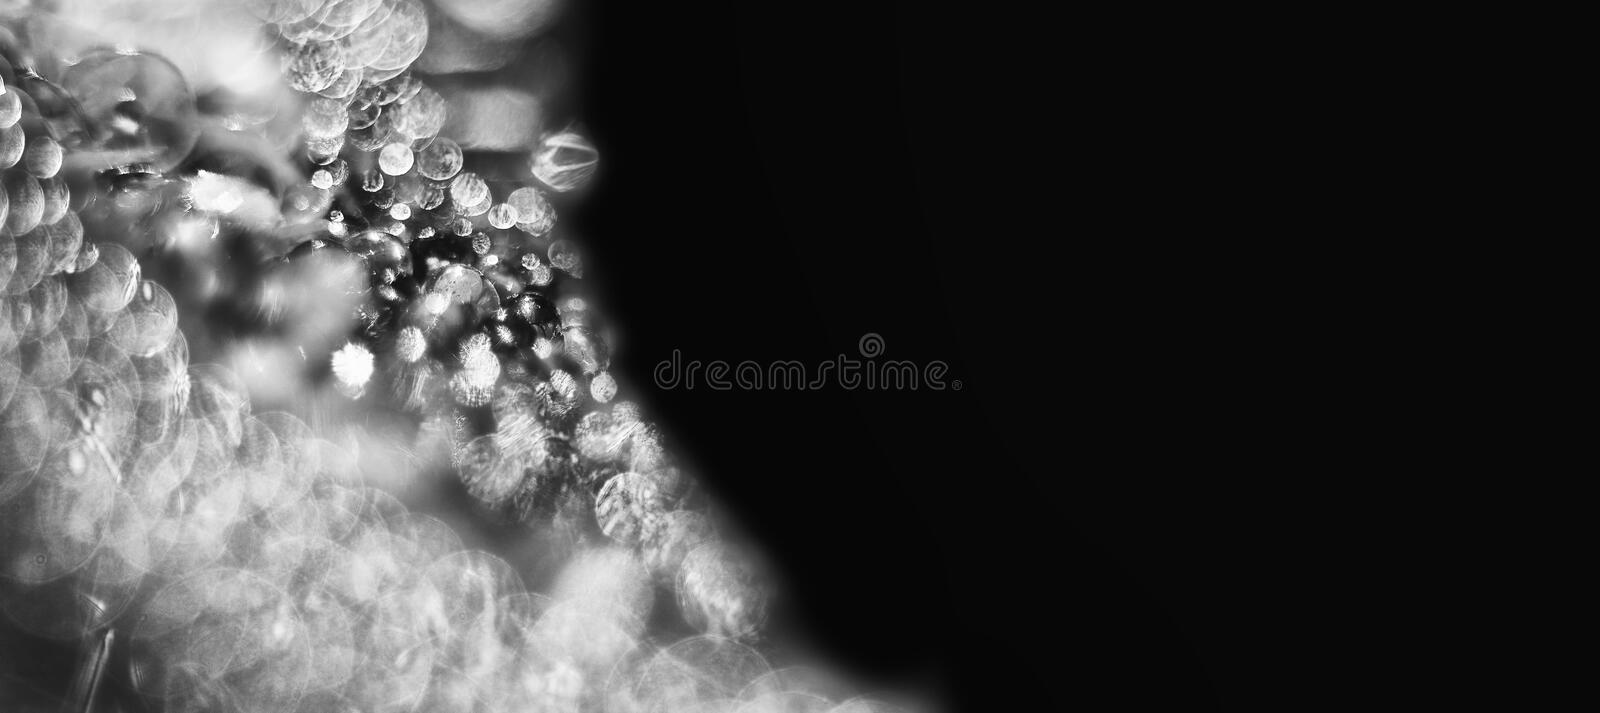 Luxury abstract black and white background. For weddings or celebrations. Banner with copy space royalty free stock image